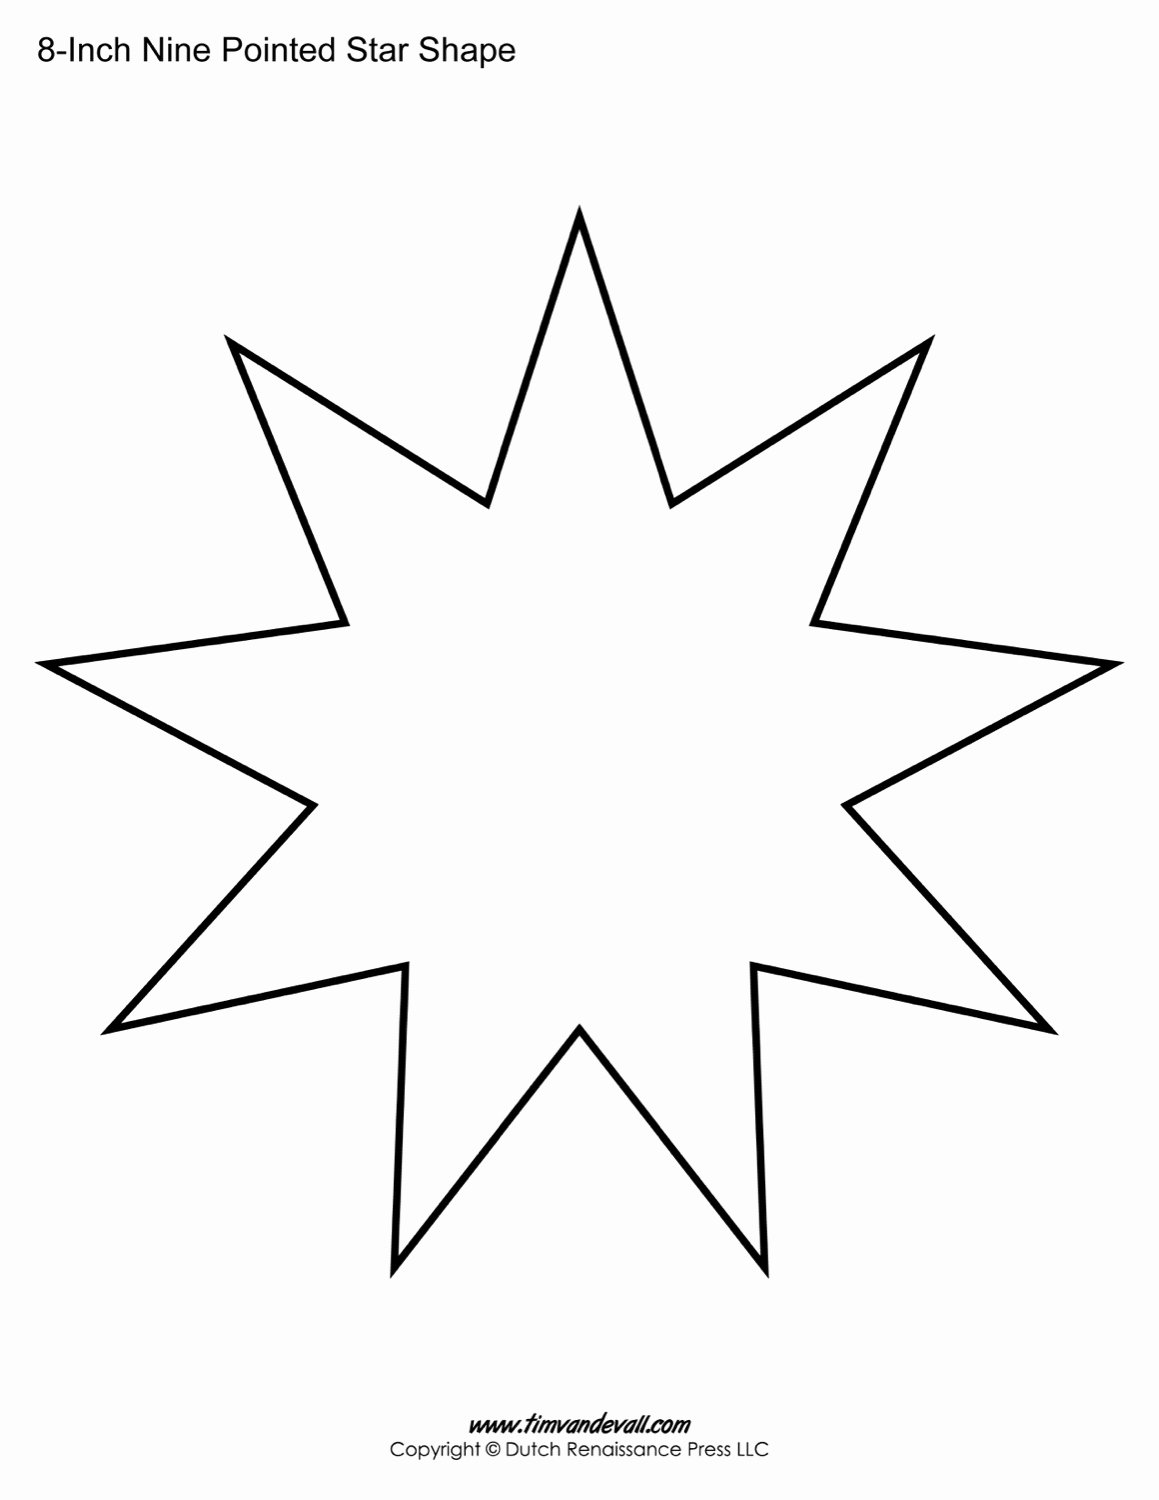 10 Inch Star Template Luxury Free Printable Nine Pointed Star Templates